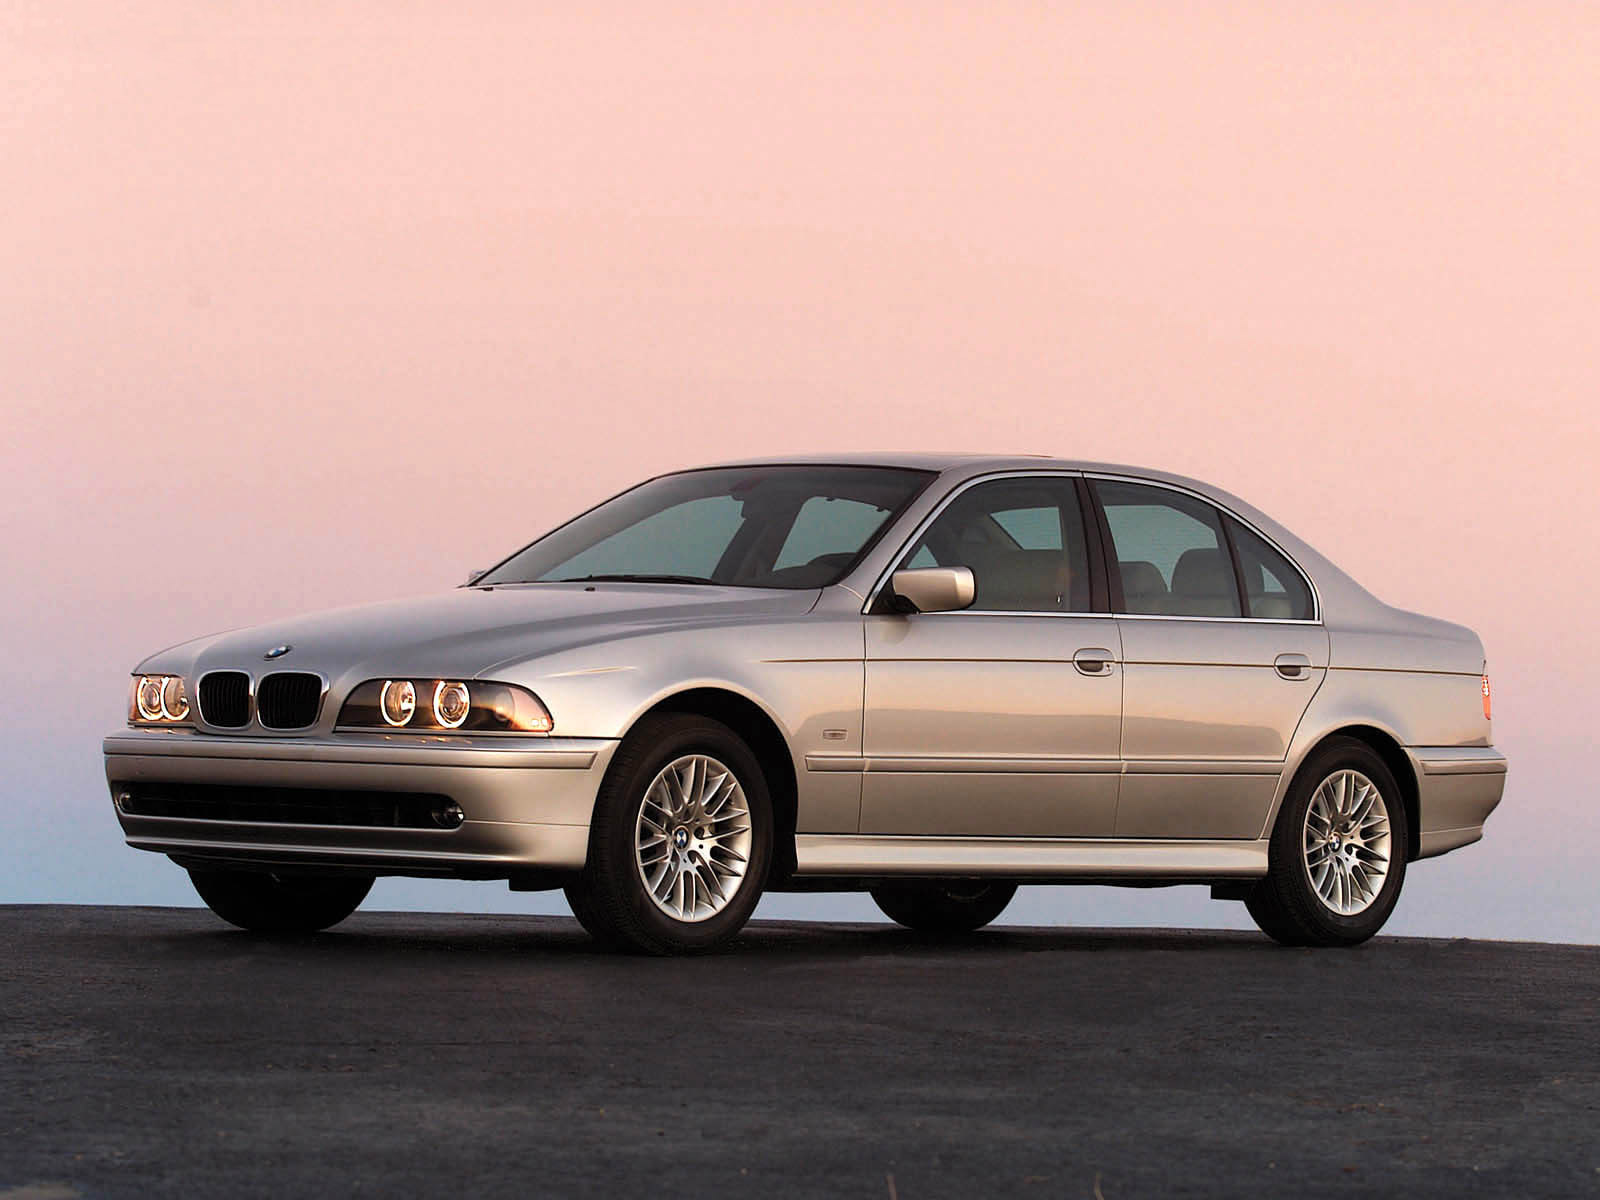 BMW 5 series 530i 2000 photo - 9